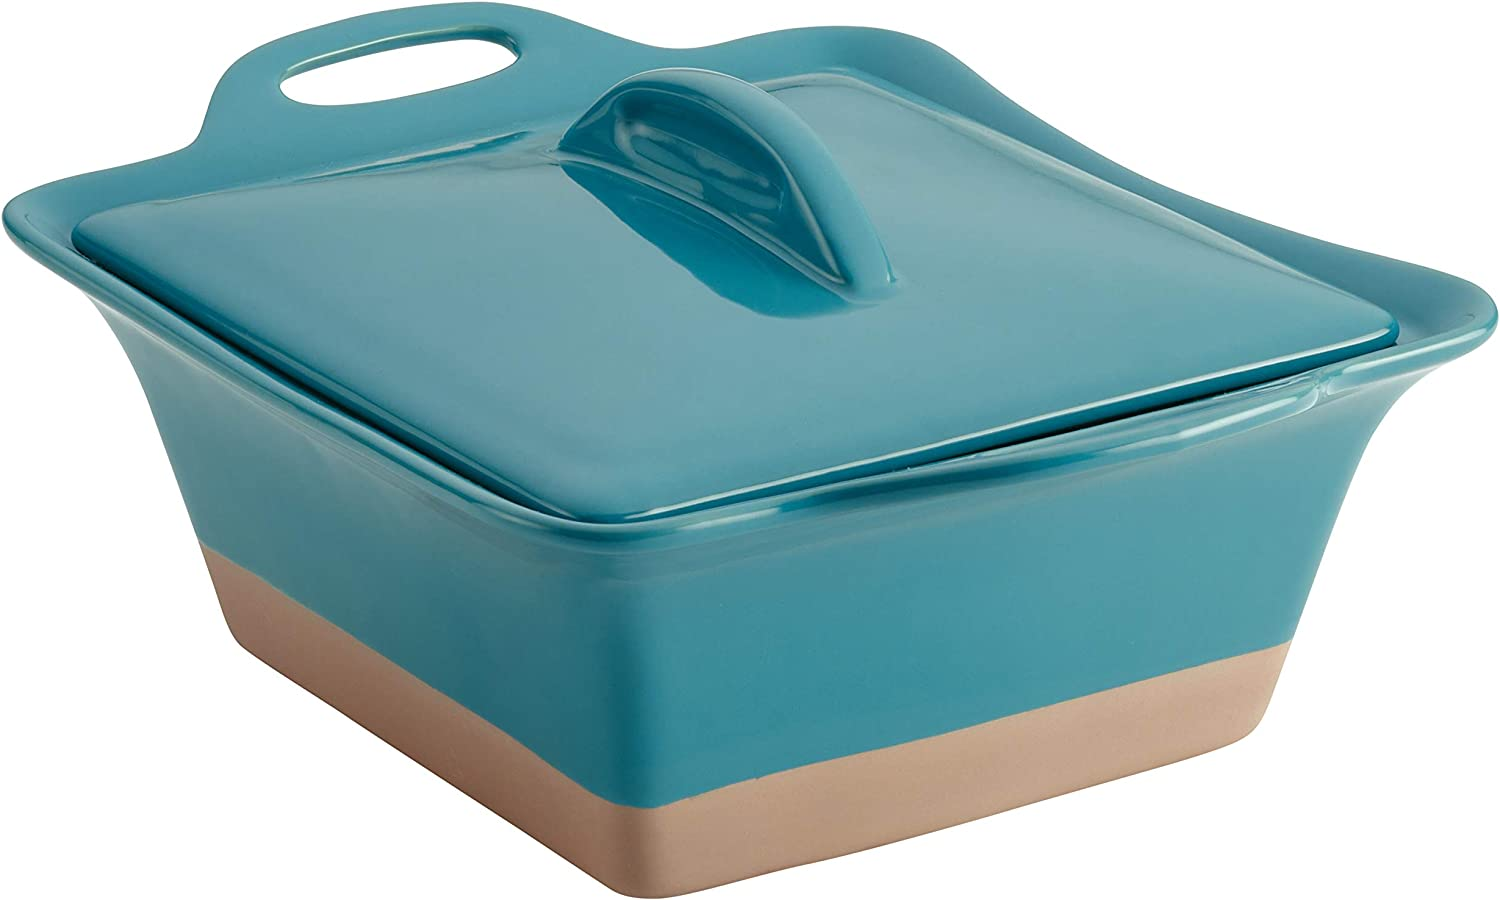 Rachael Ray Collection Stoneware Square Casserole